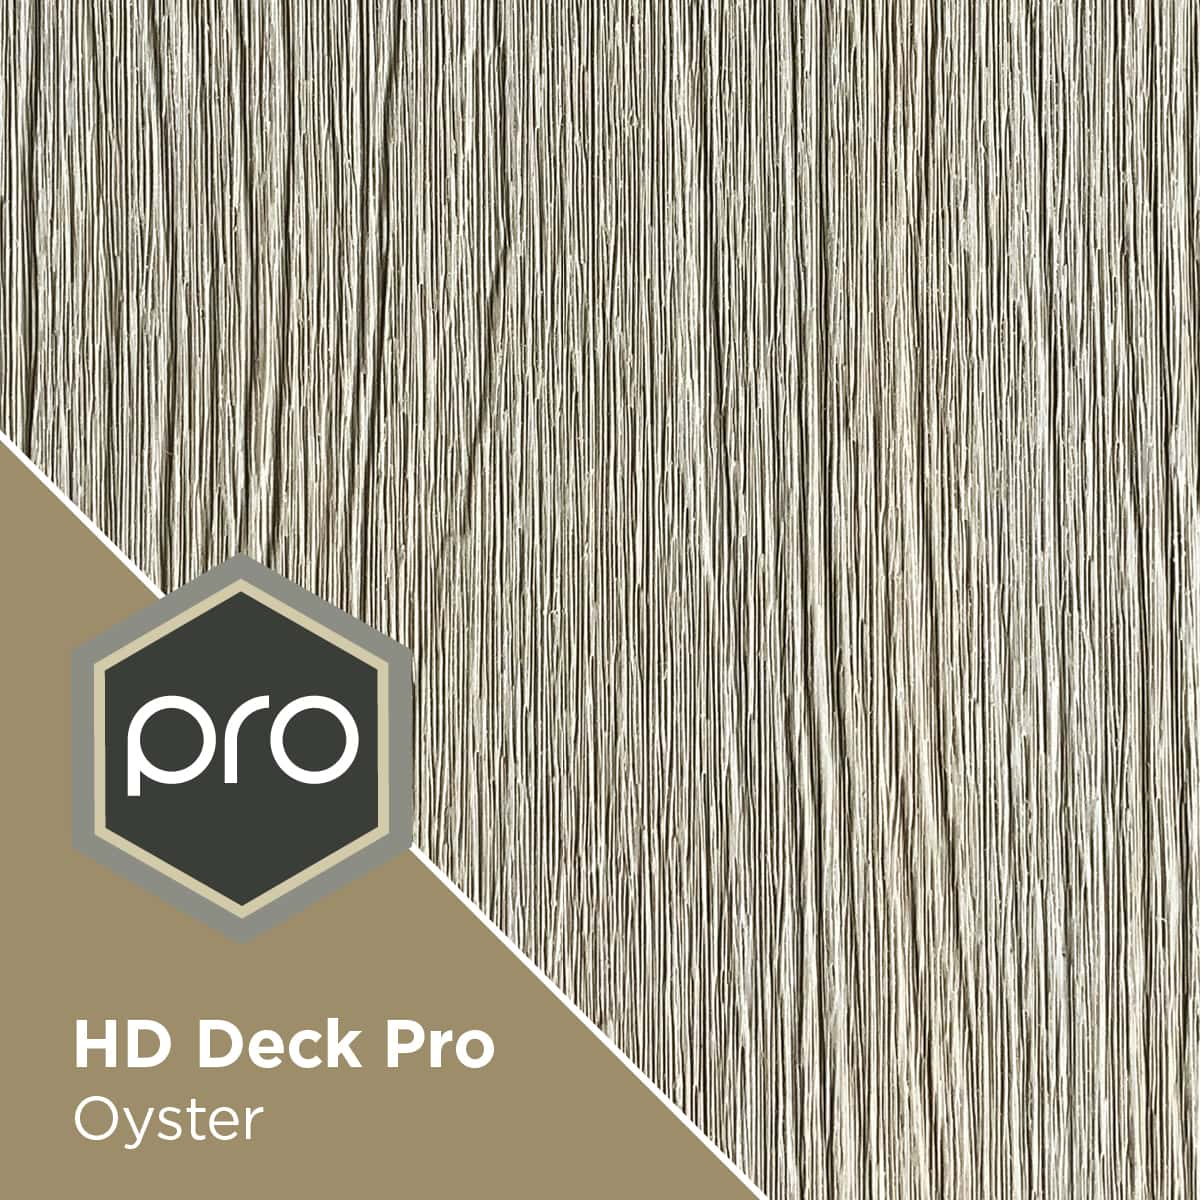 HD Deck Pro Oyster